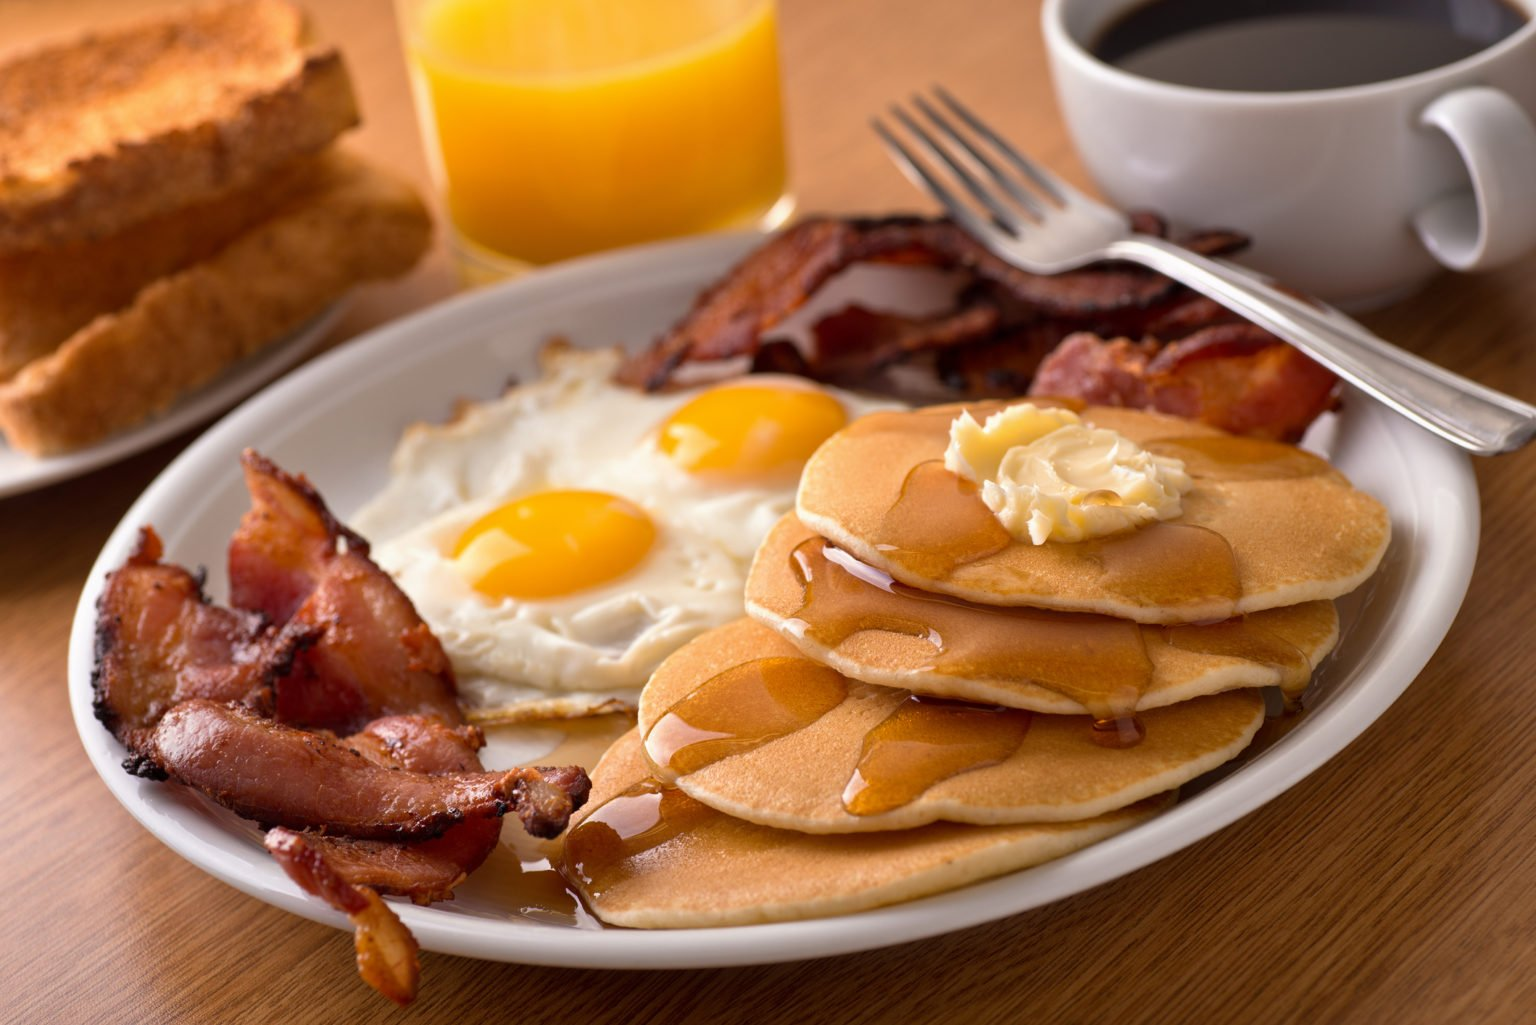 Dunes Village serves one of the best breakfasts in Myrtle Beach.